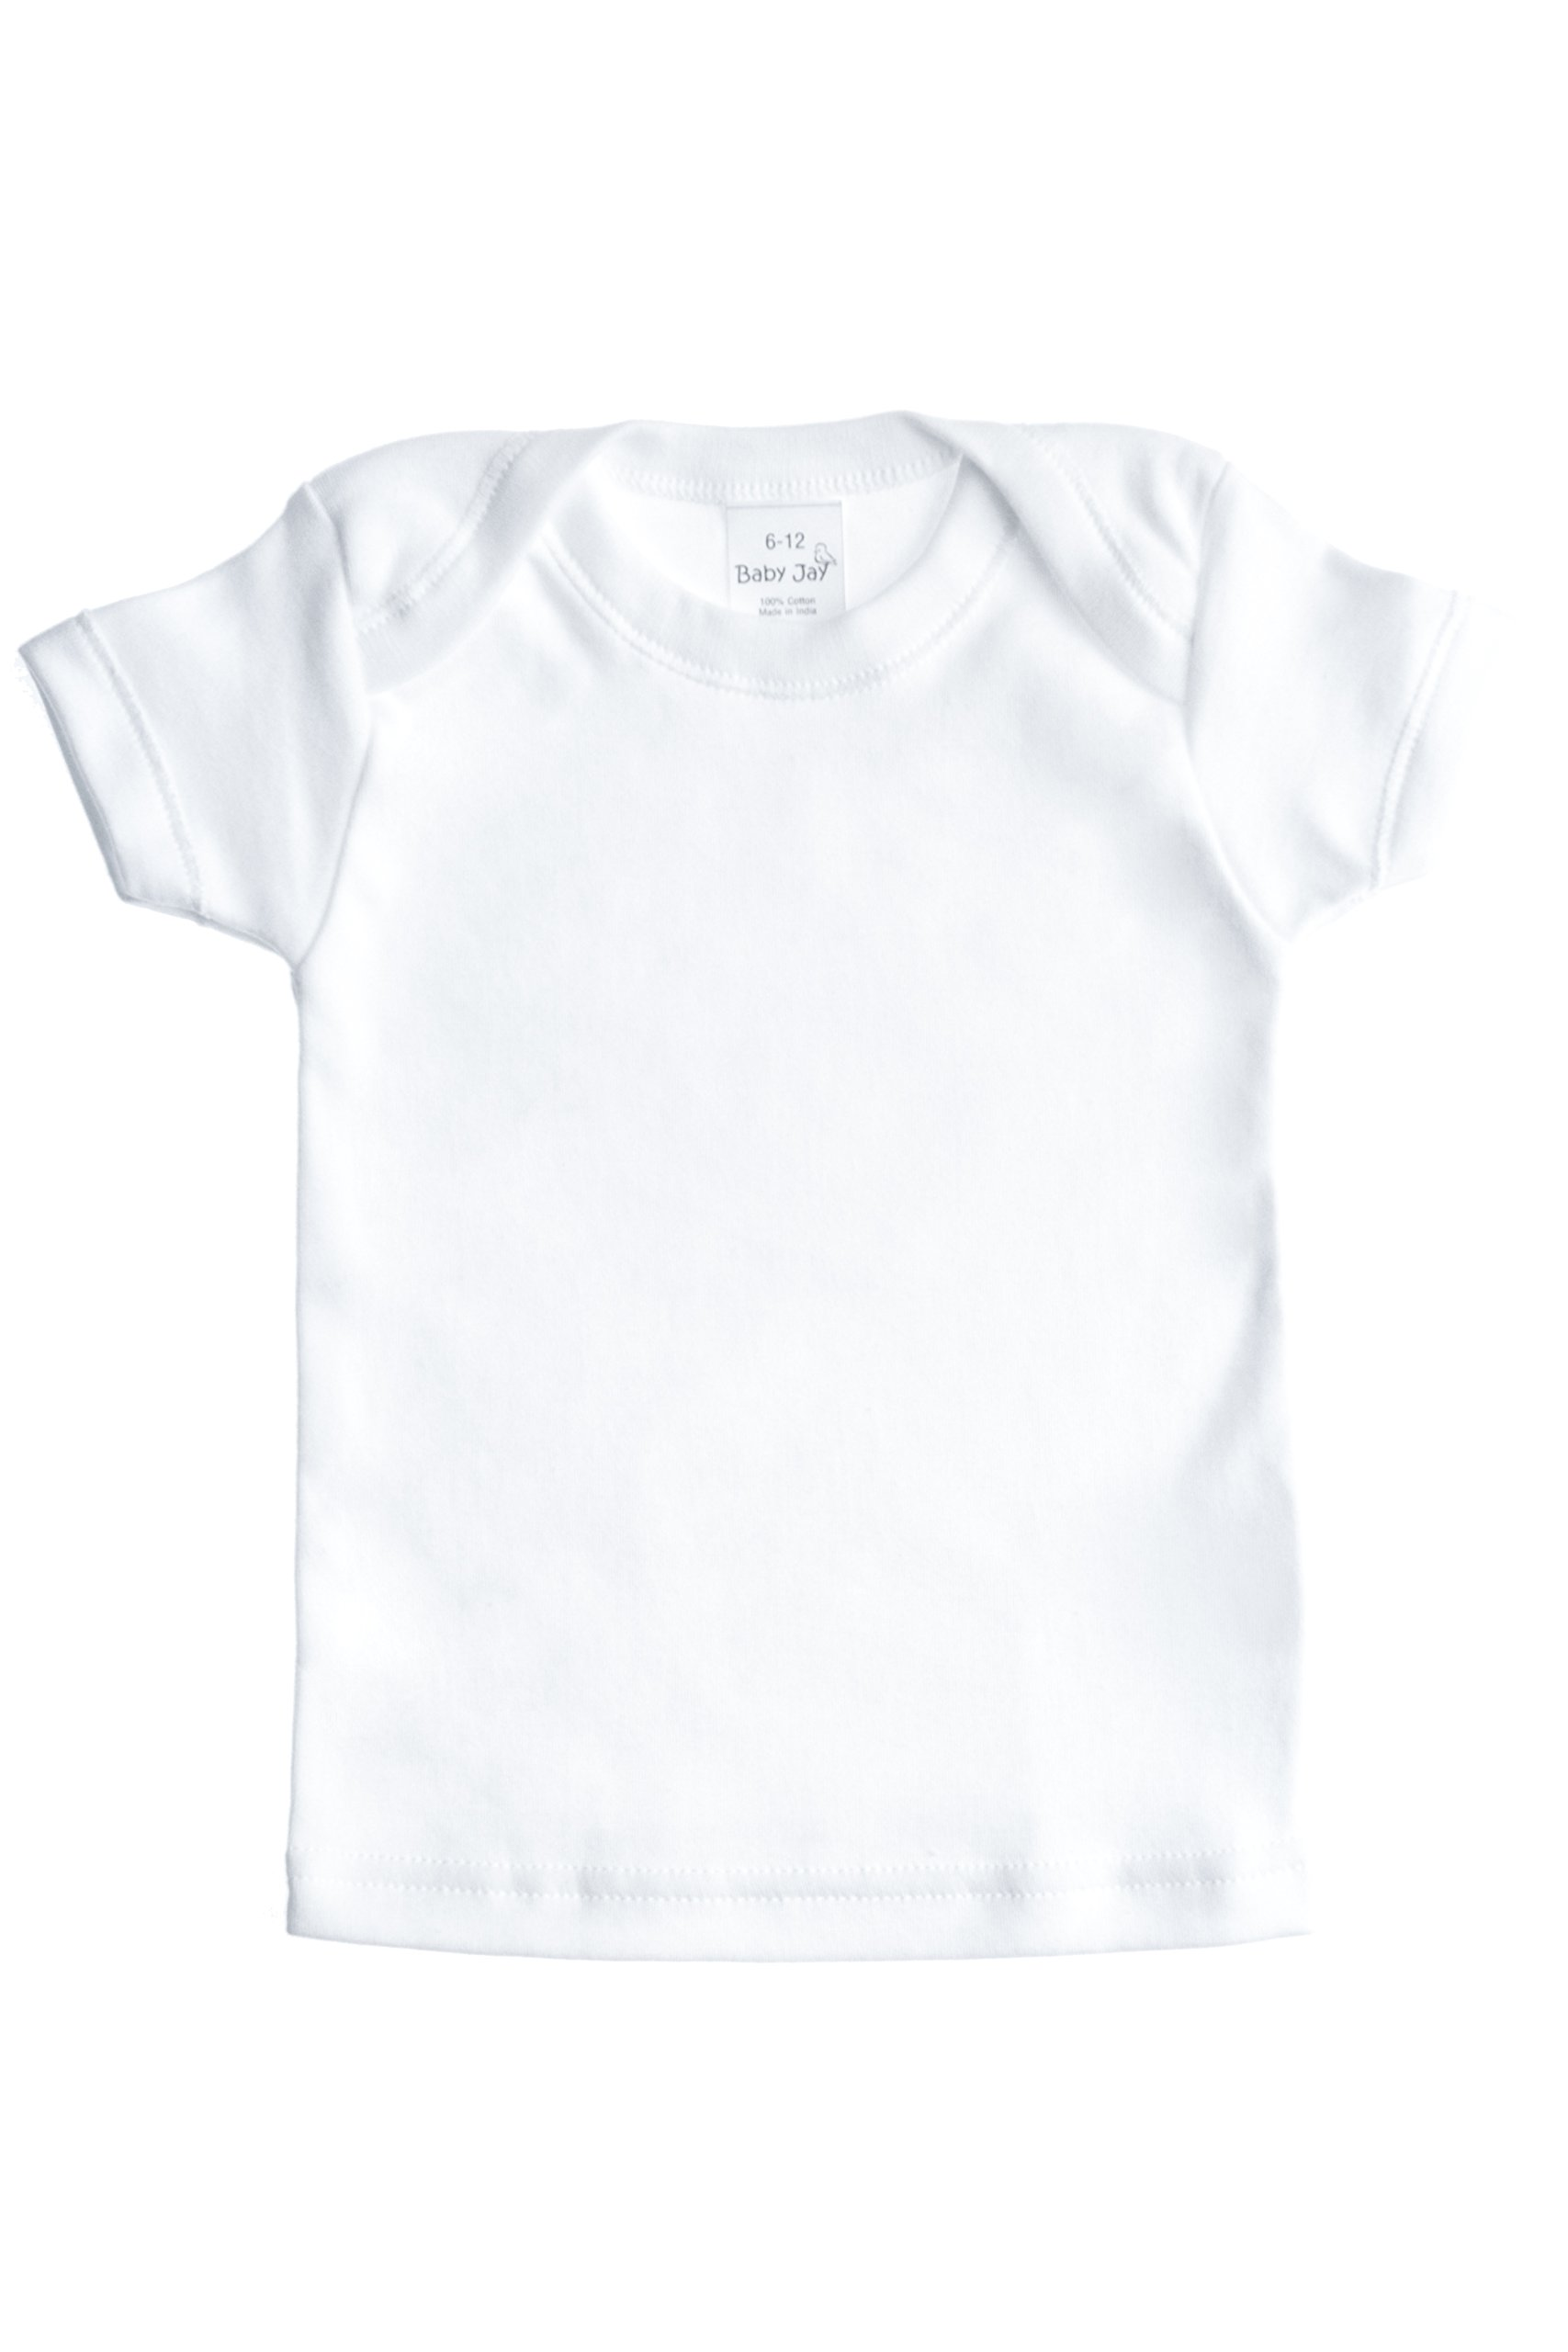 Baby Jay Cotton Undershirt T-Shirt, Short Sleeve Lap Shoulder - WTSE 6-12 5-Pack by Baby Jay (Image #2)